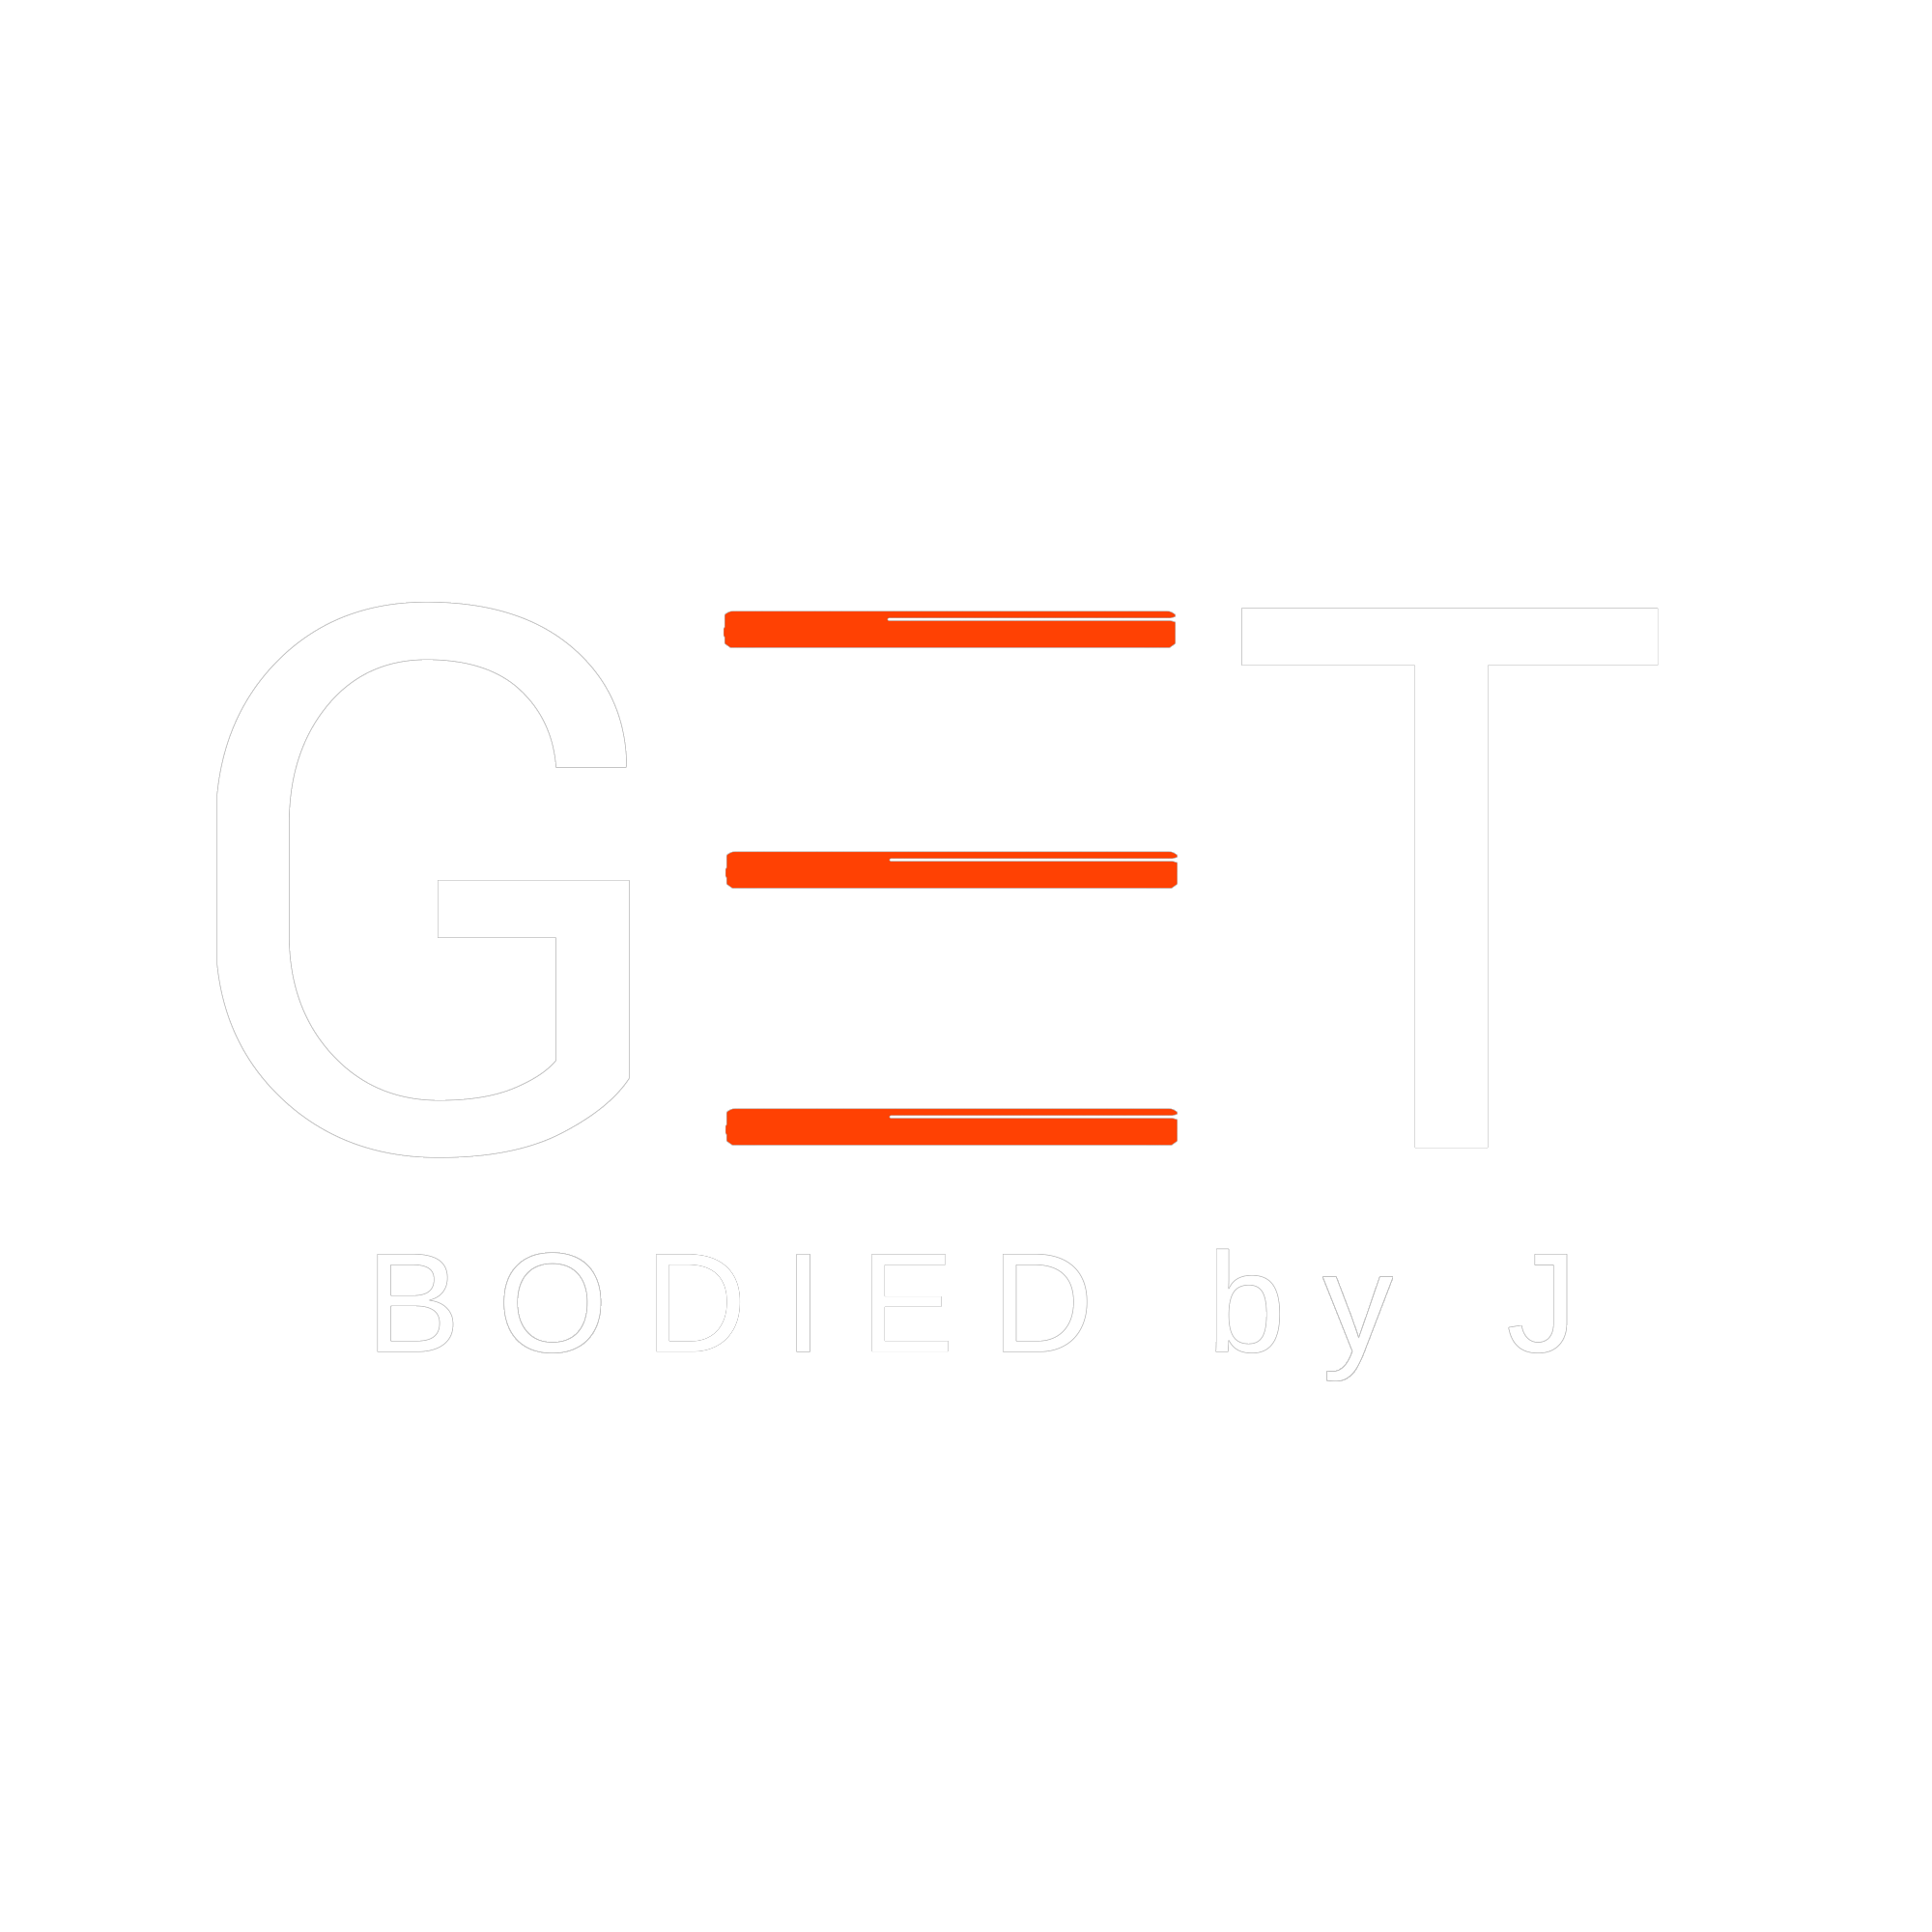 get bodied by j